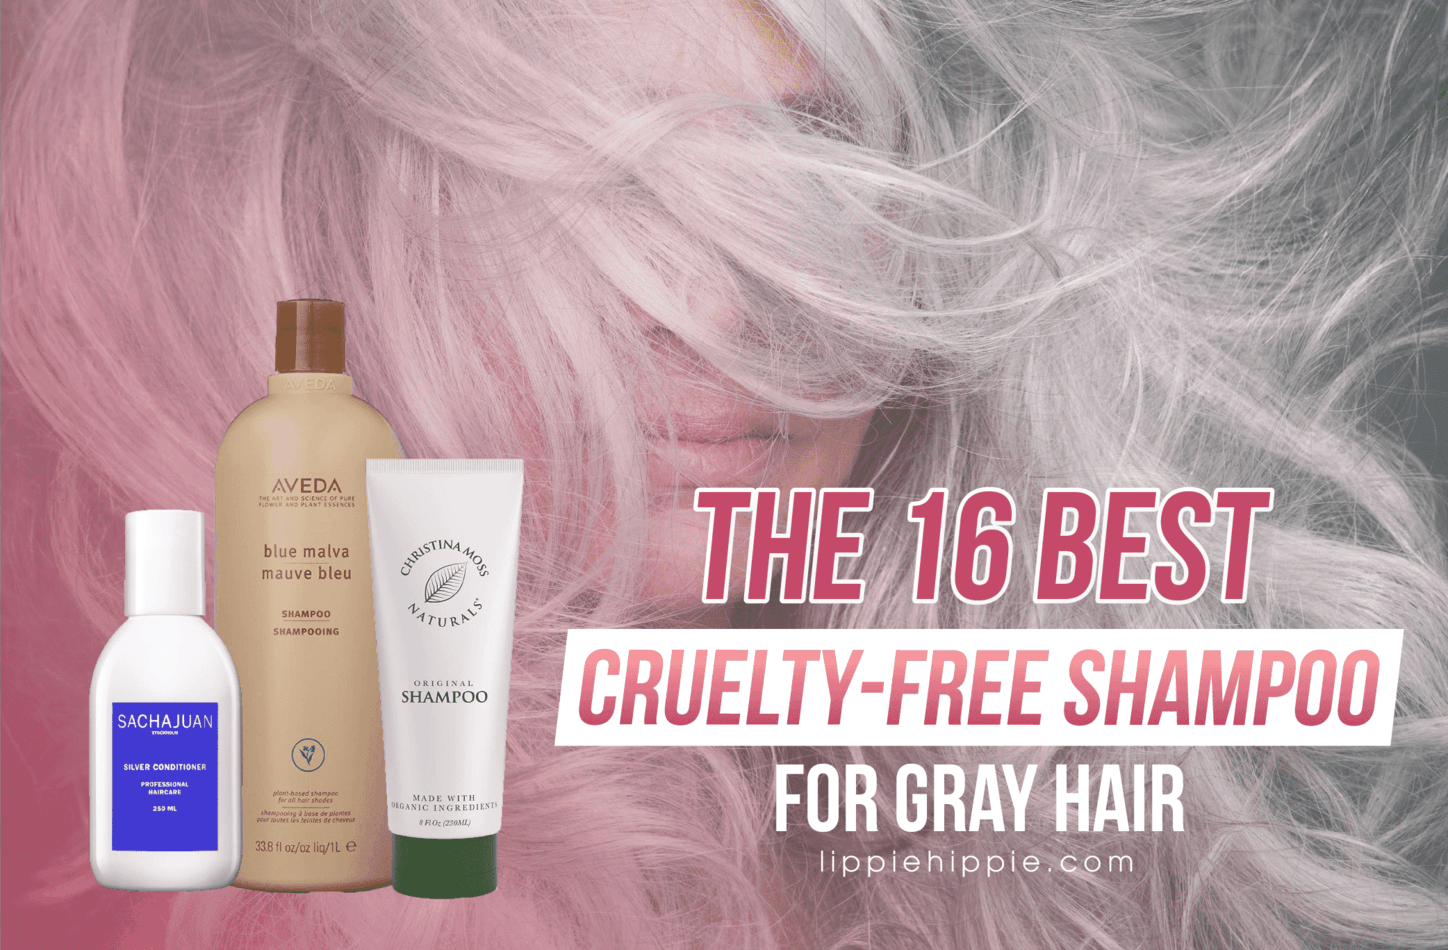 Best Cruelty-Free Shampoo for Gray Hair